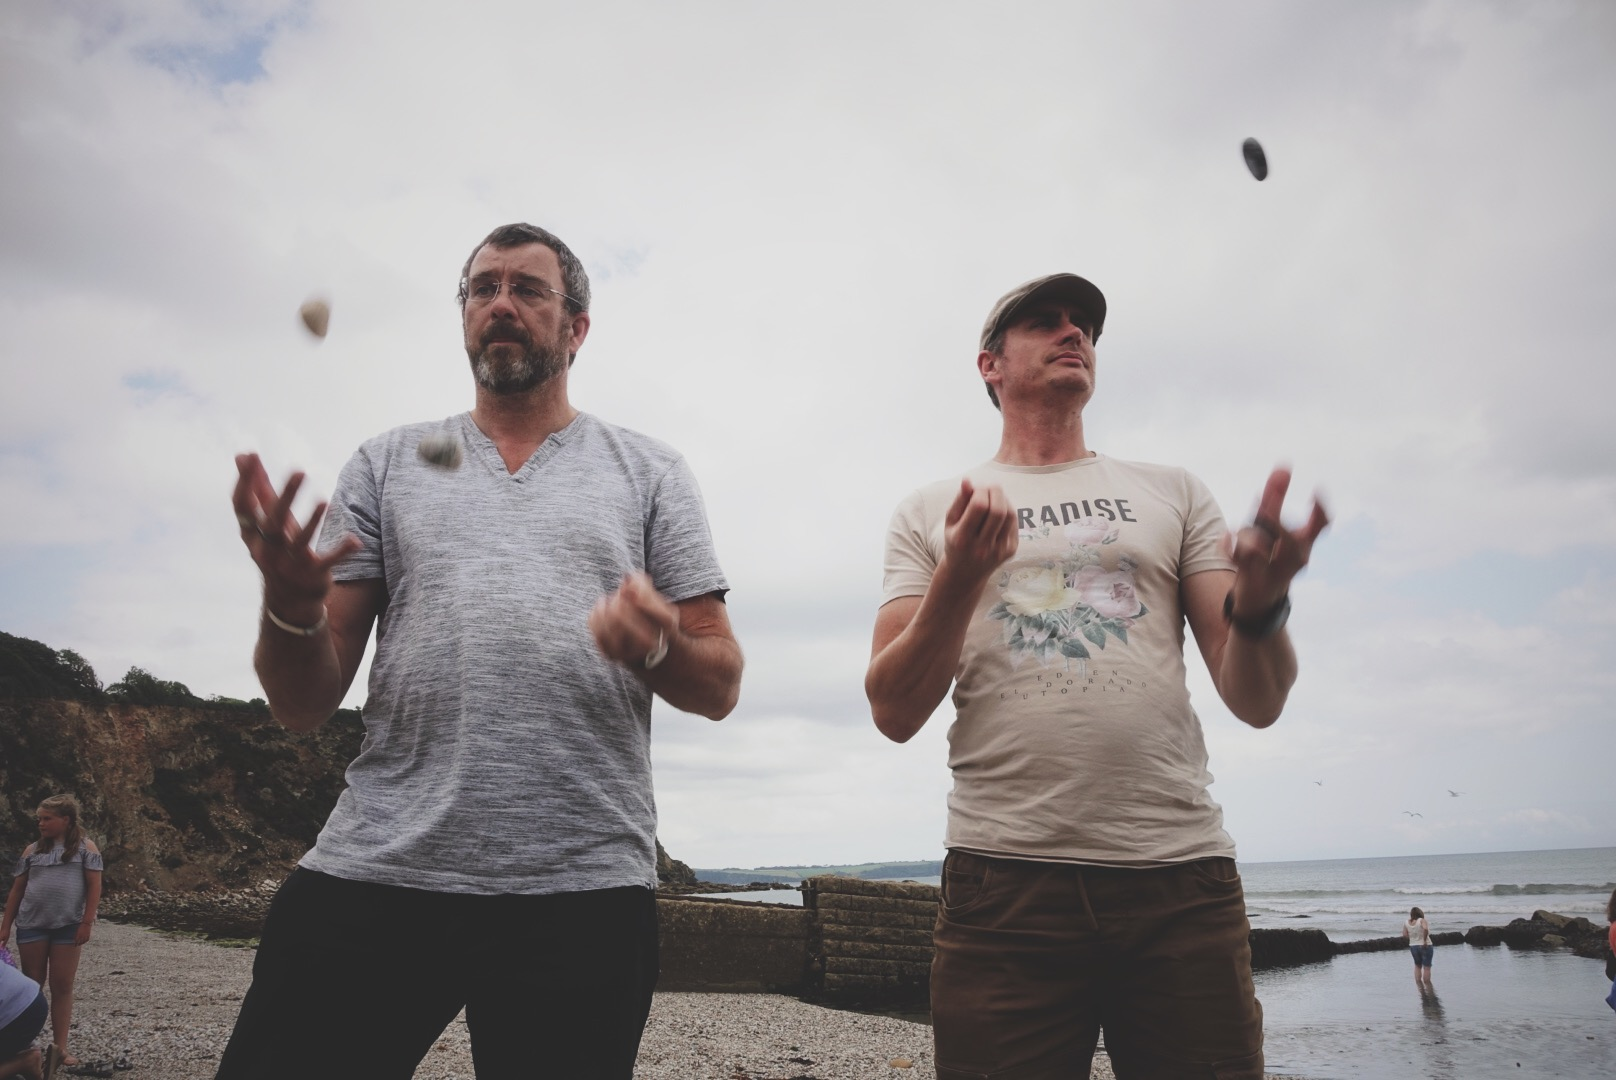 Marcus and his brother Nathan (who lives in Vancouver, Canada), making good juggling use of the pebbles on the beach.